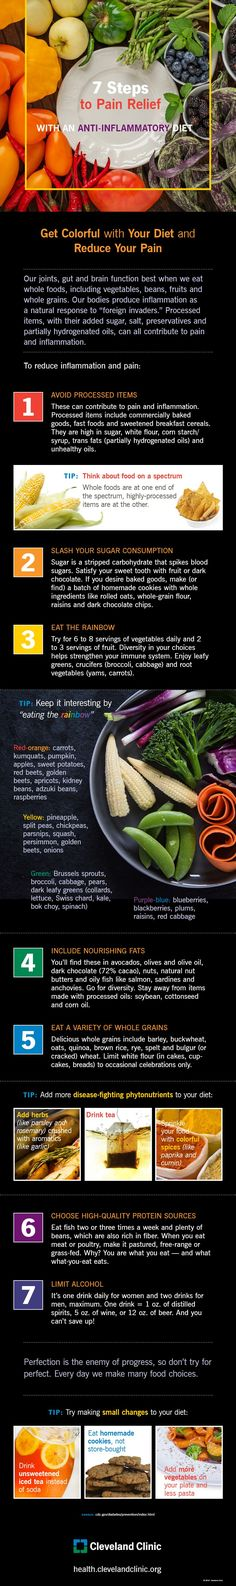 Anti Diet - 7 Steps to Pain Relief With an Anti-inflammatory Diet (Infographic) The Anti-Diet Solution is a system of eating that heals the lining inside of your gut by destroying the bad bacteria and replacing it with healthy bacteria Diabetes Tattoo, Diabetes Diet, Diabetes Recipes, Arthritis Diet, Arthritis Remedies, Diabetes Remedies, Inflammatory Arthritis, Psoriatic Arthritis, Arthritis